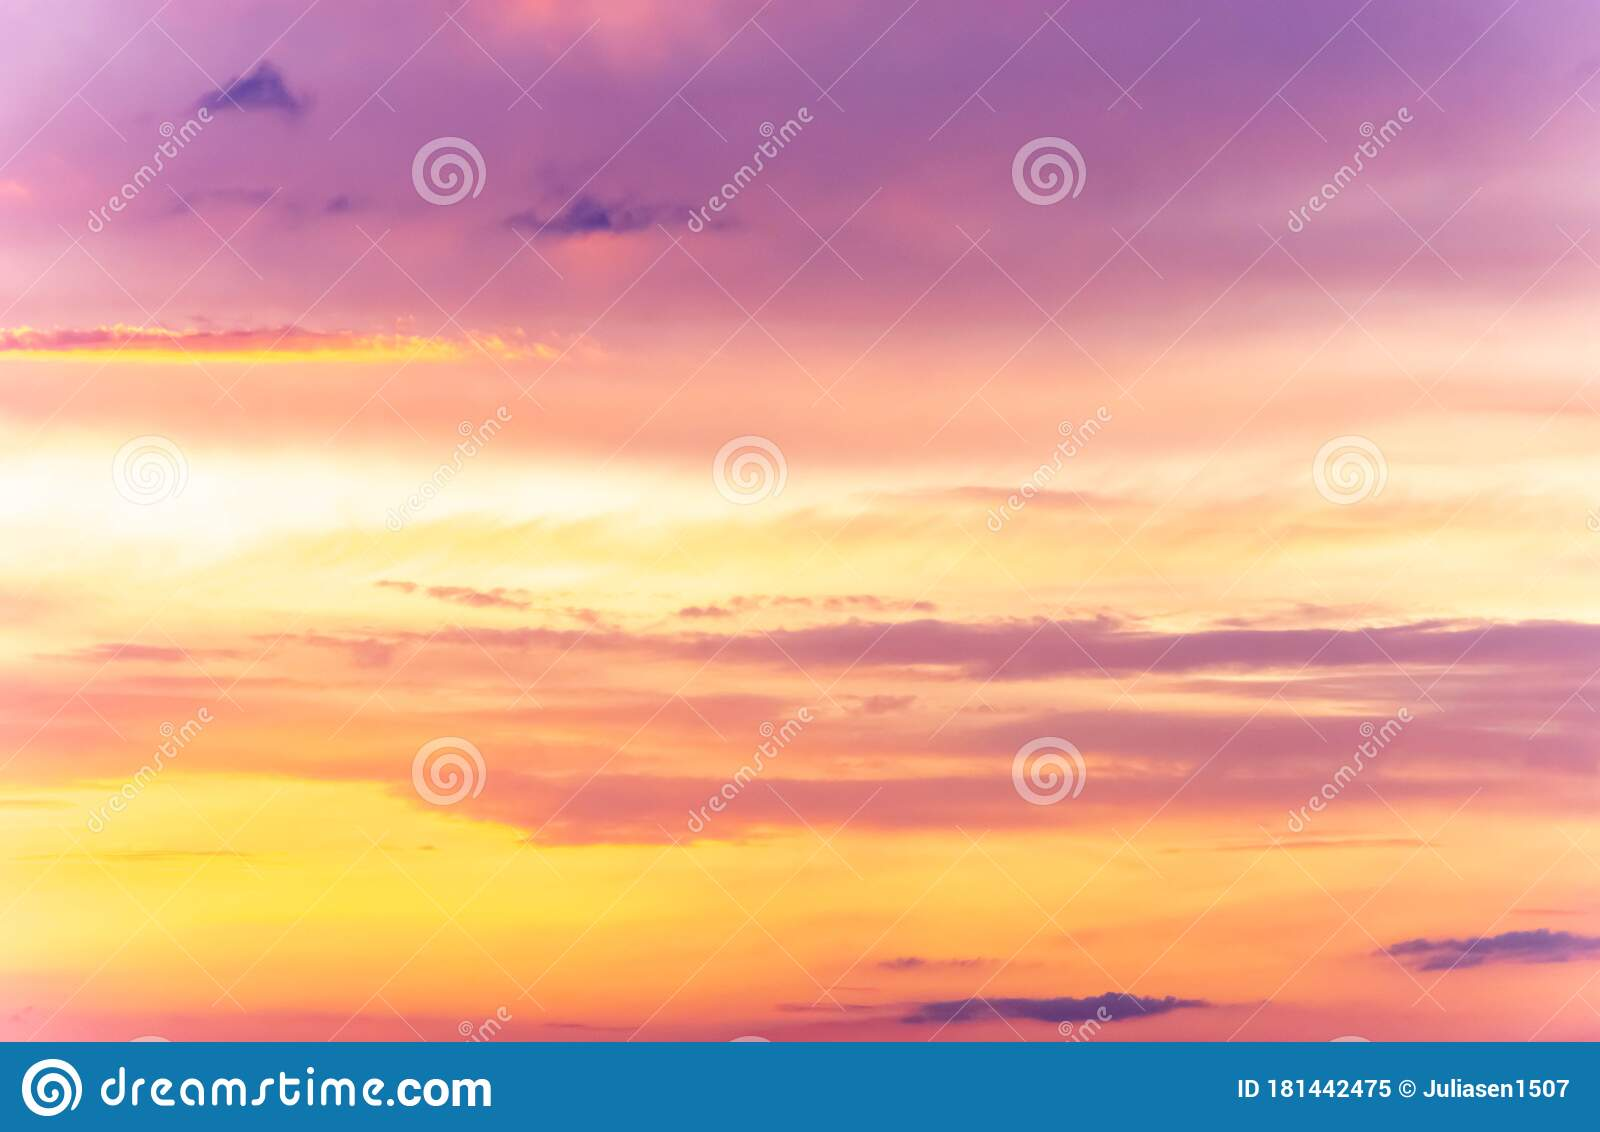 782 286 clouds sunset photos free royalty free stock photos from dreamstime dreamstime com